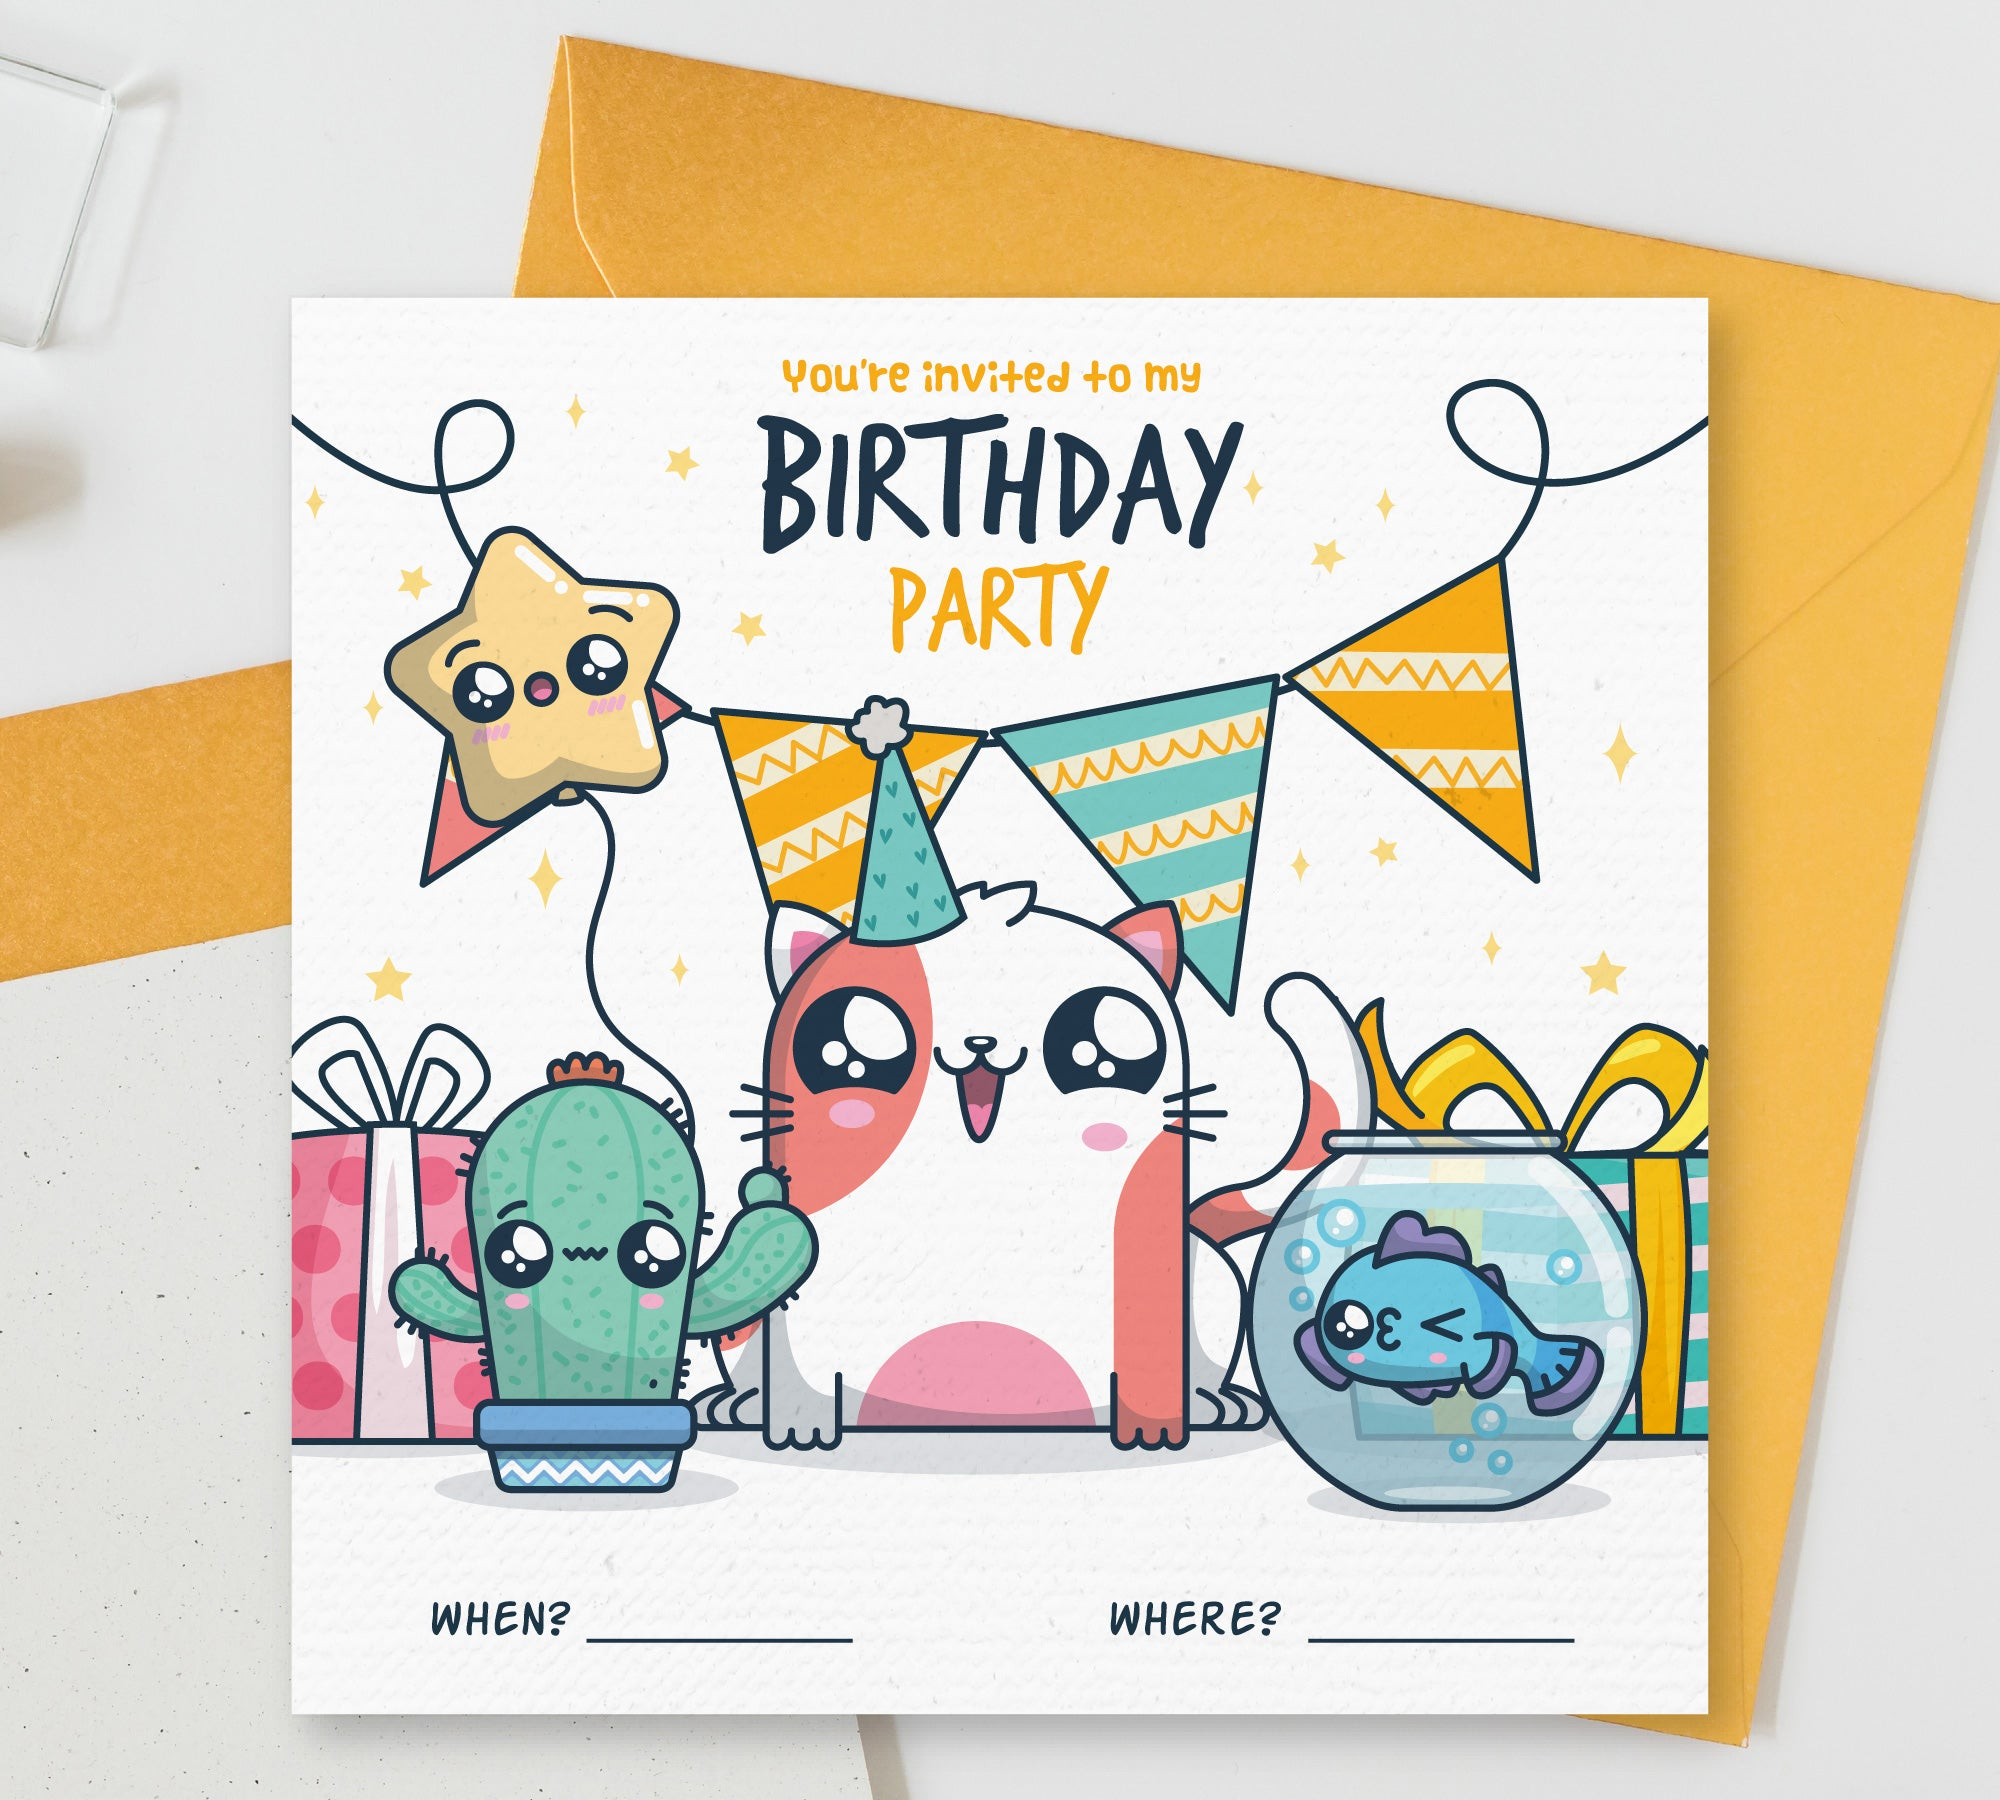 You Are Invited To My Birthday Party Party Theme Printed Invitation Card Set Of 25 Pcs